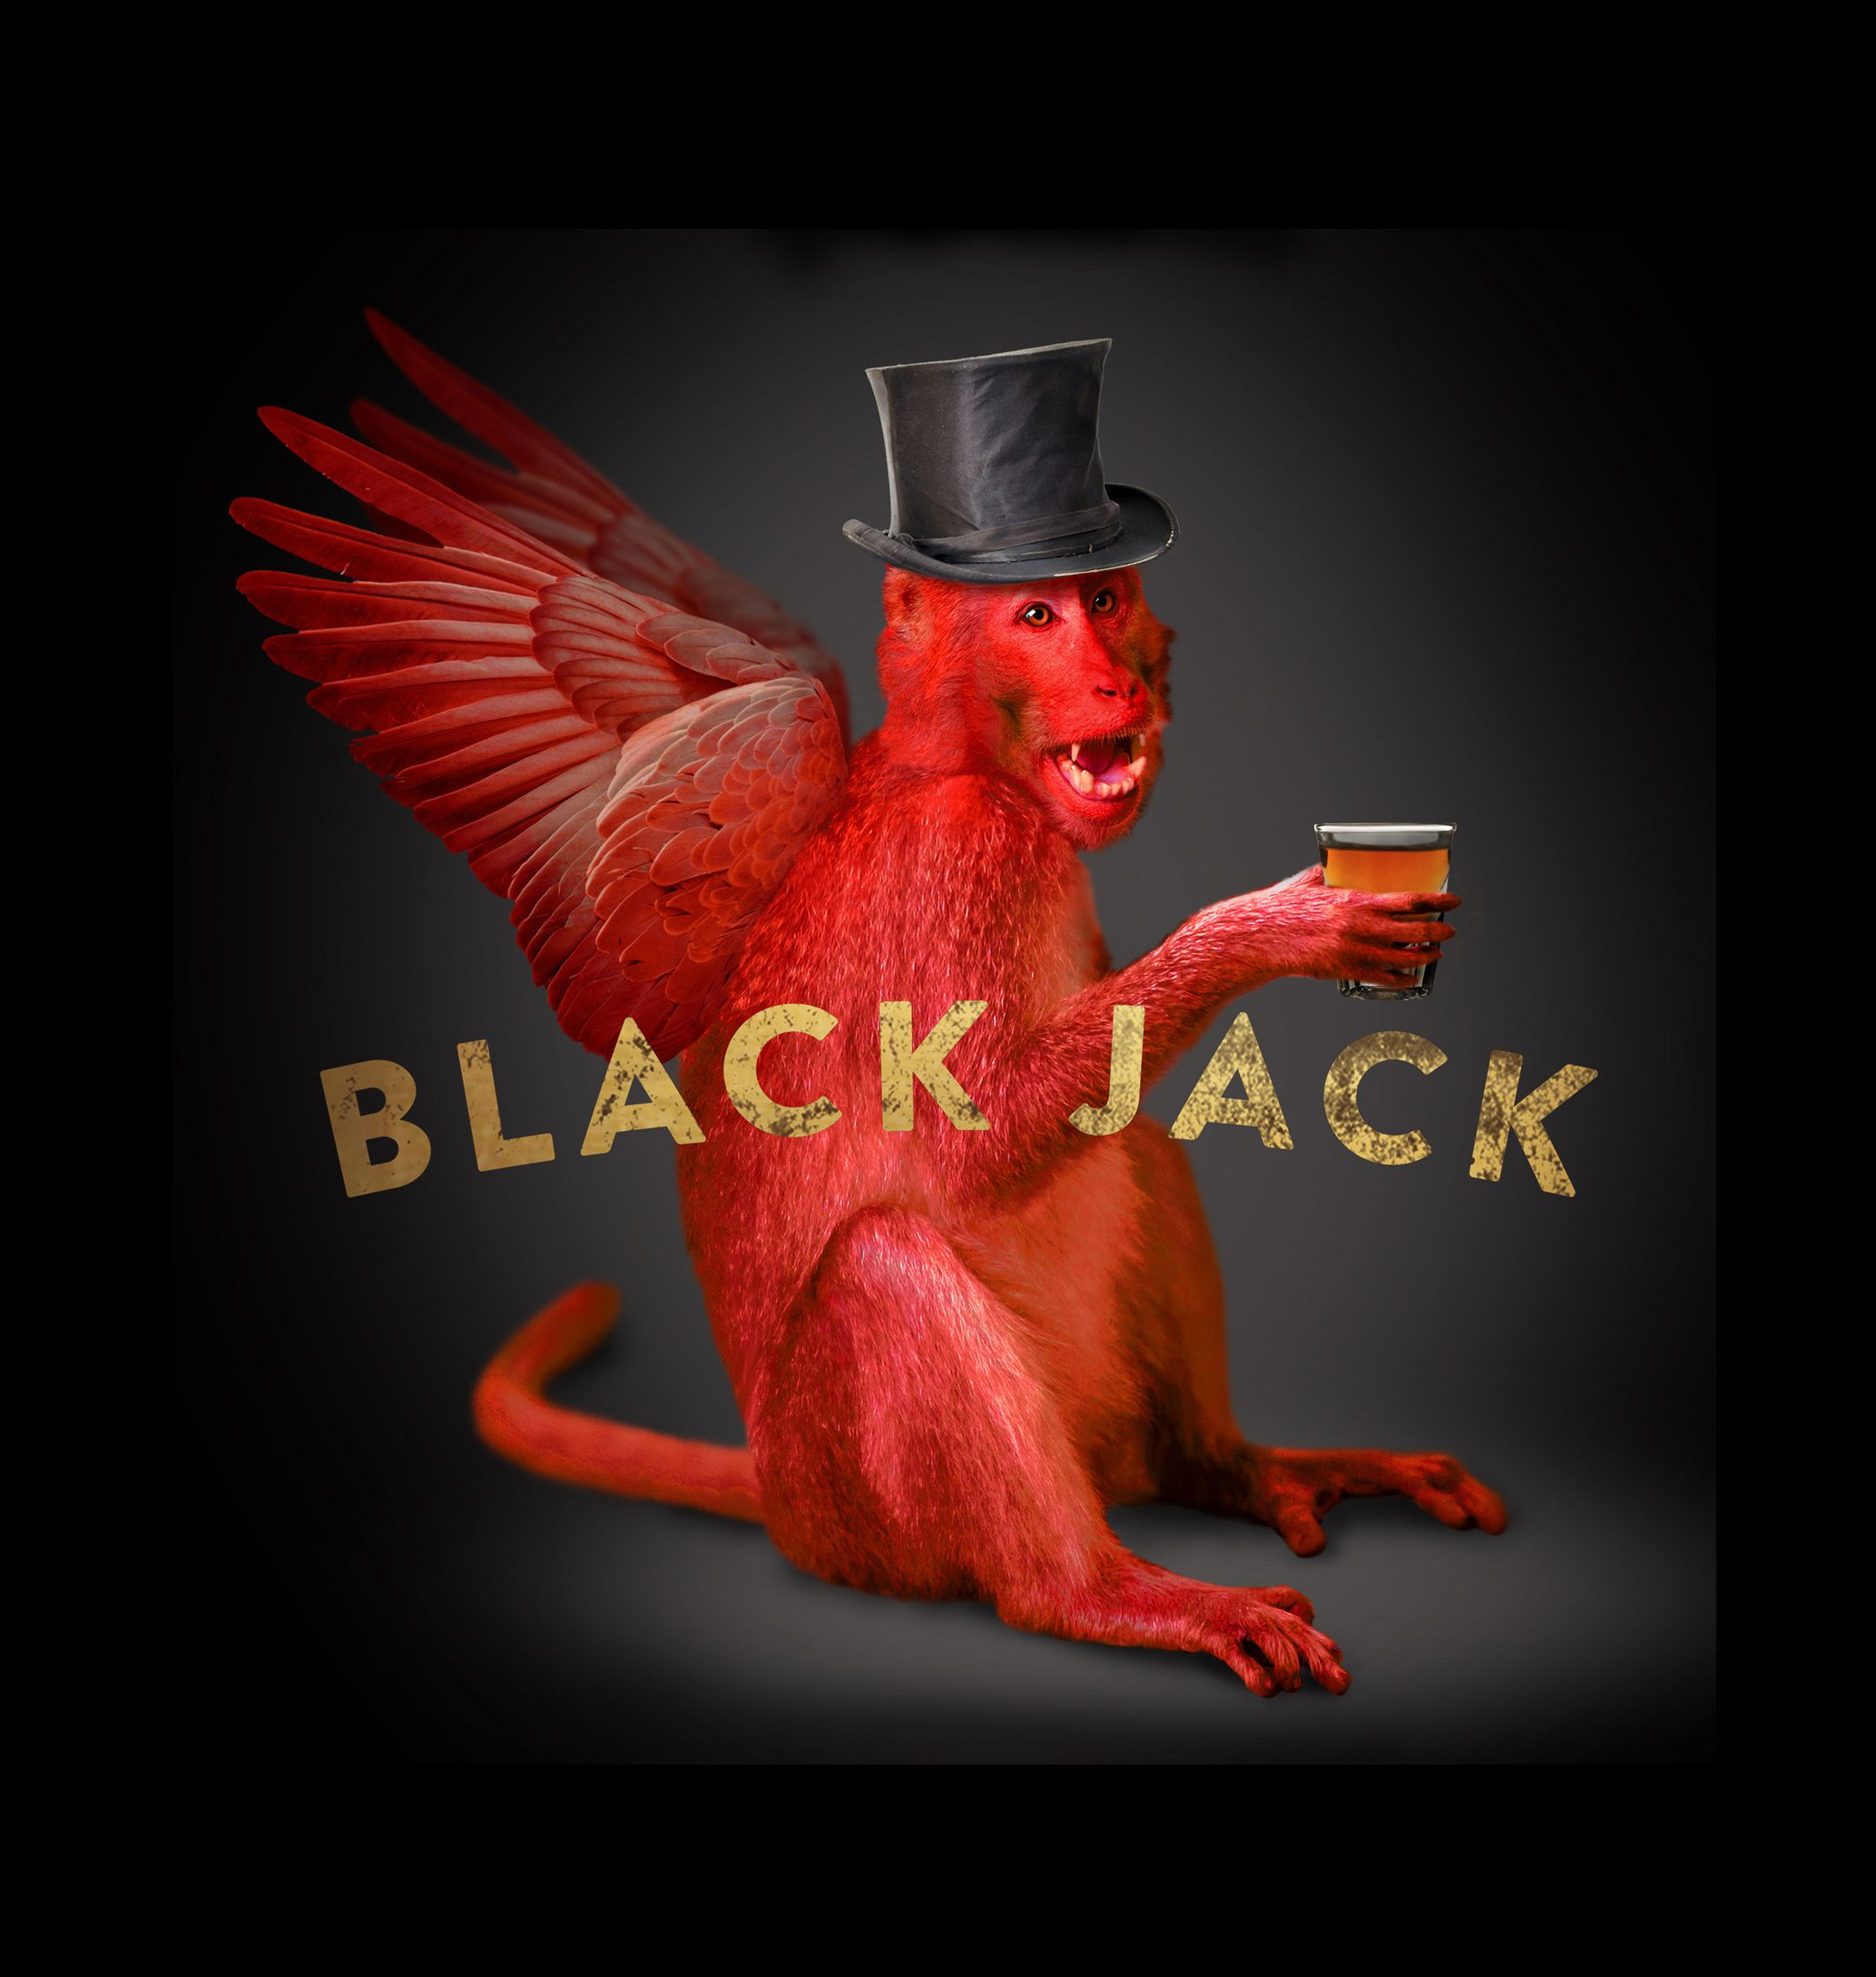 Pin by Shelter Studios, Inc. on Black Jack (With images